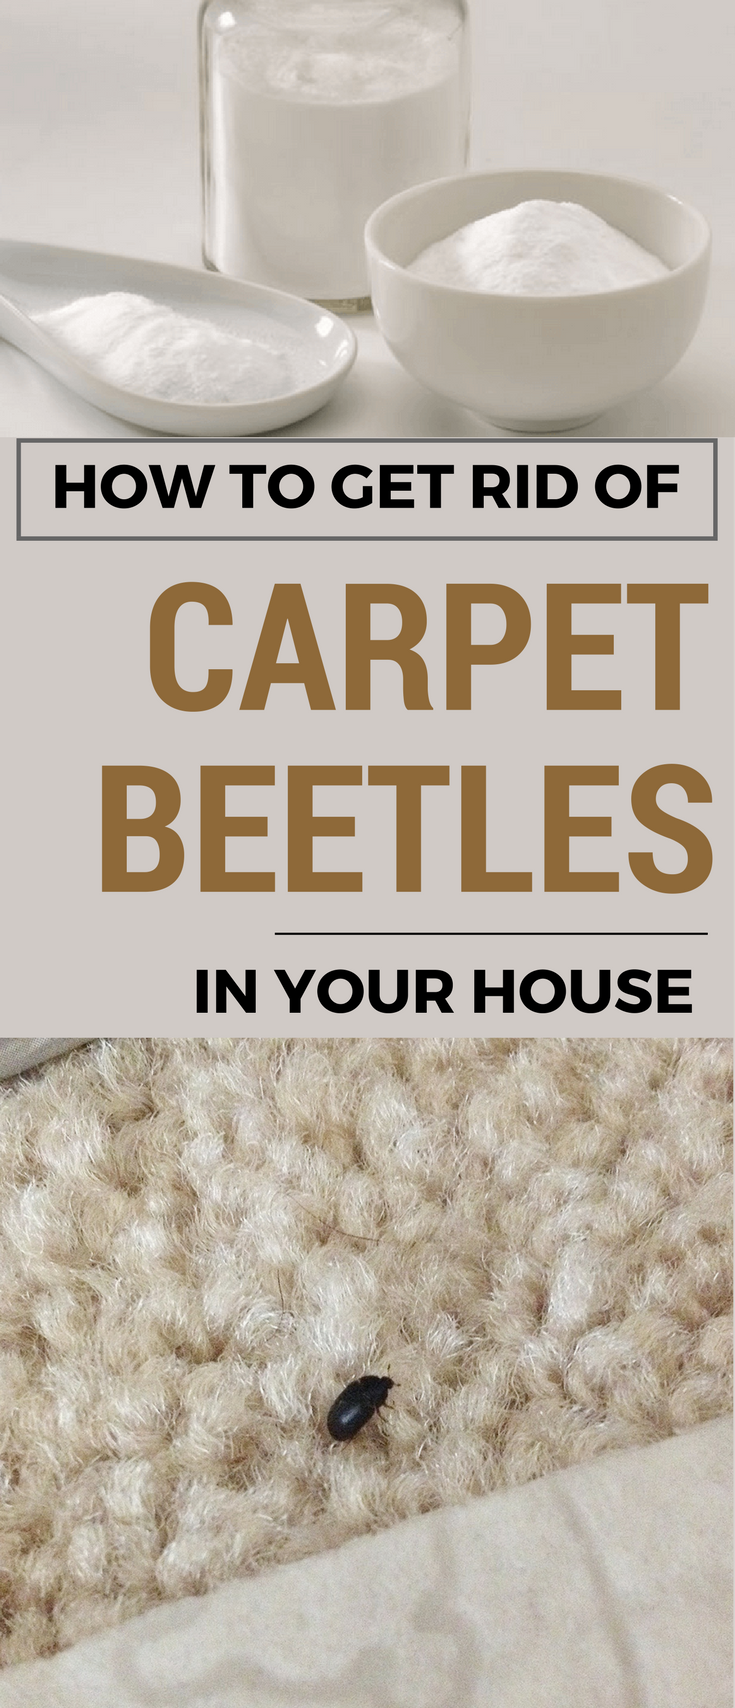 How To Get Rid Of Carpet Beetles In Your House Ncleaningtips Com Cleaning Hacks Clean Dishwasher Deep Cleaning Tips